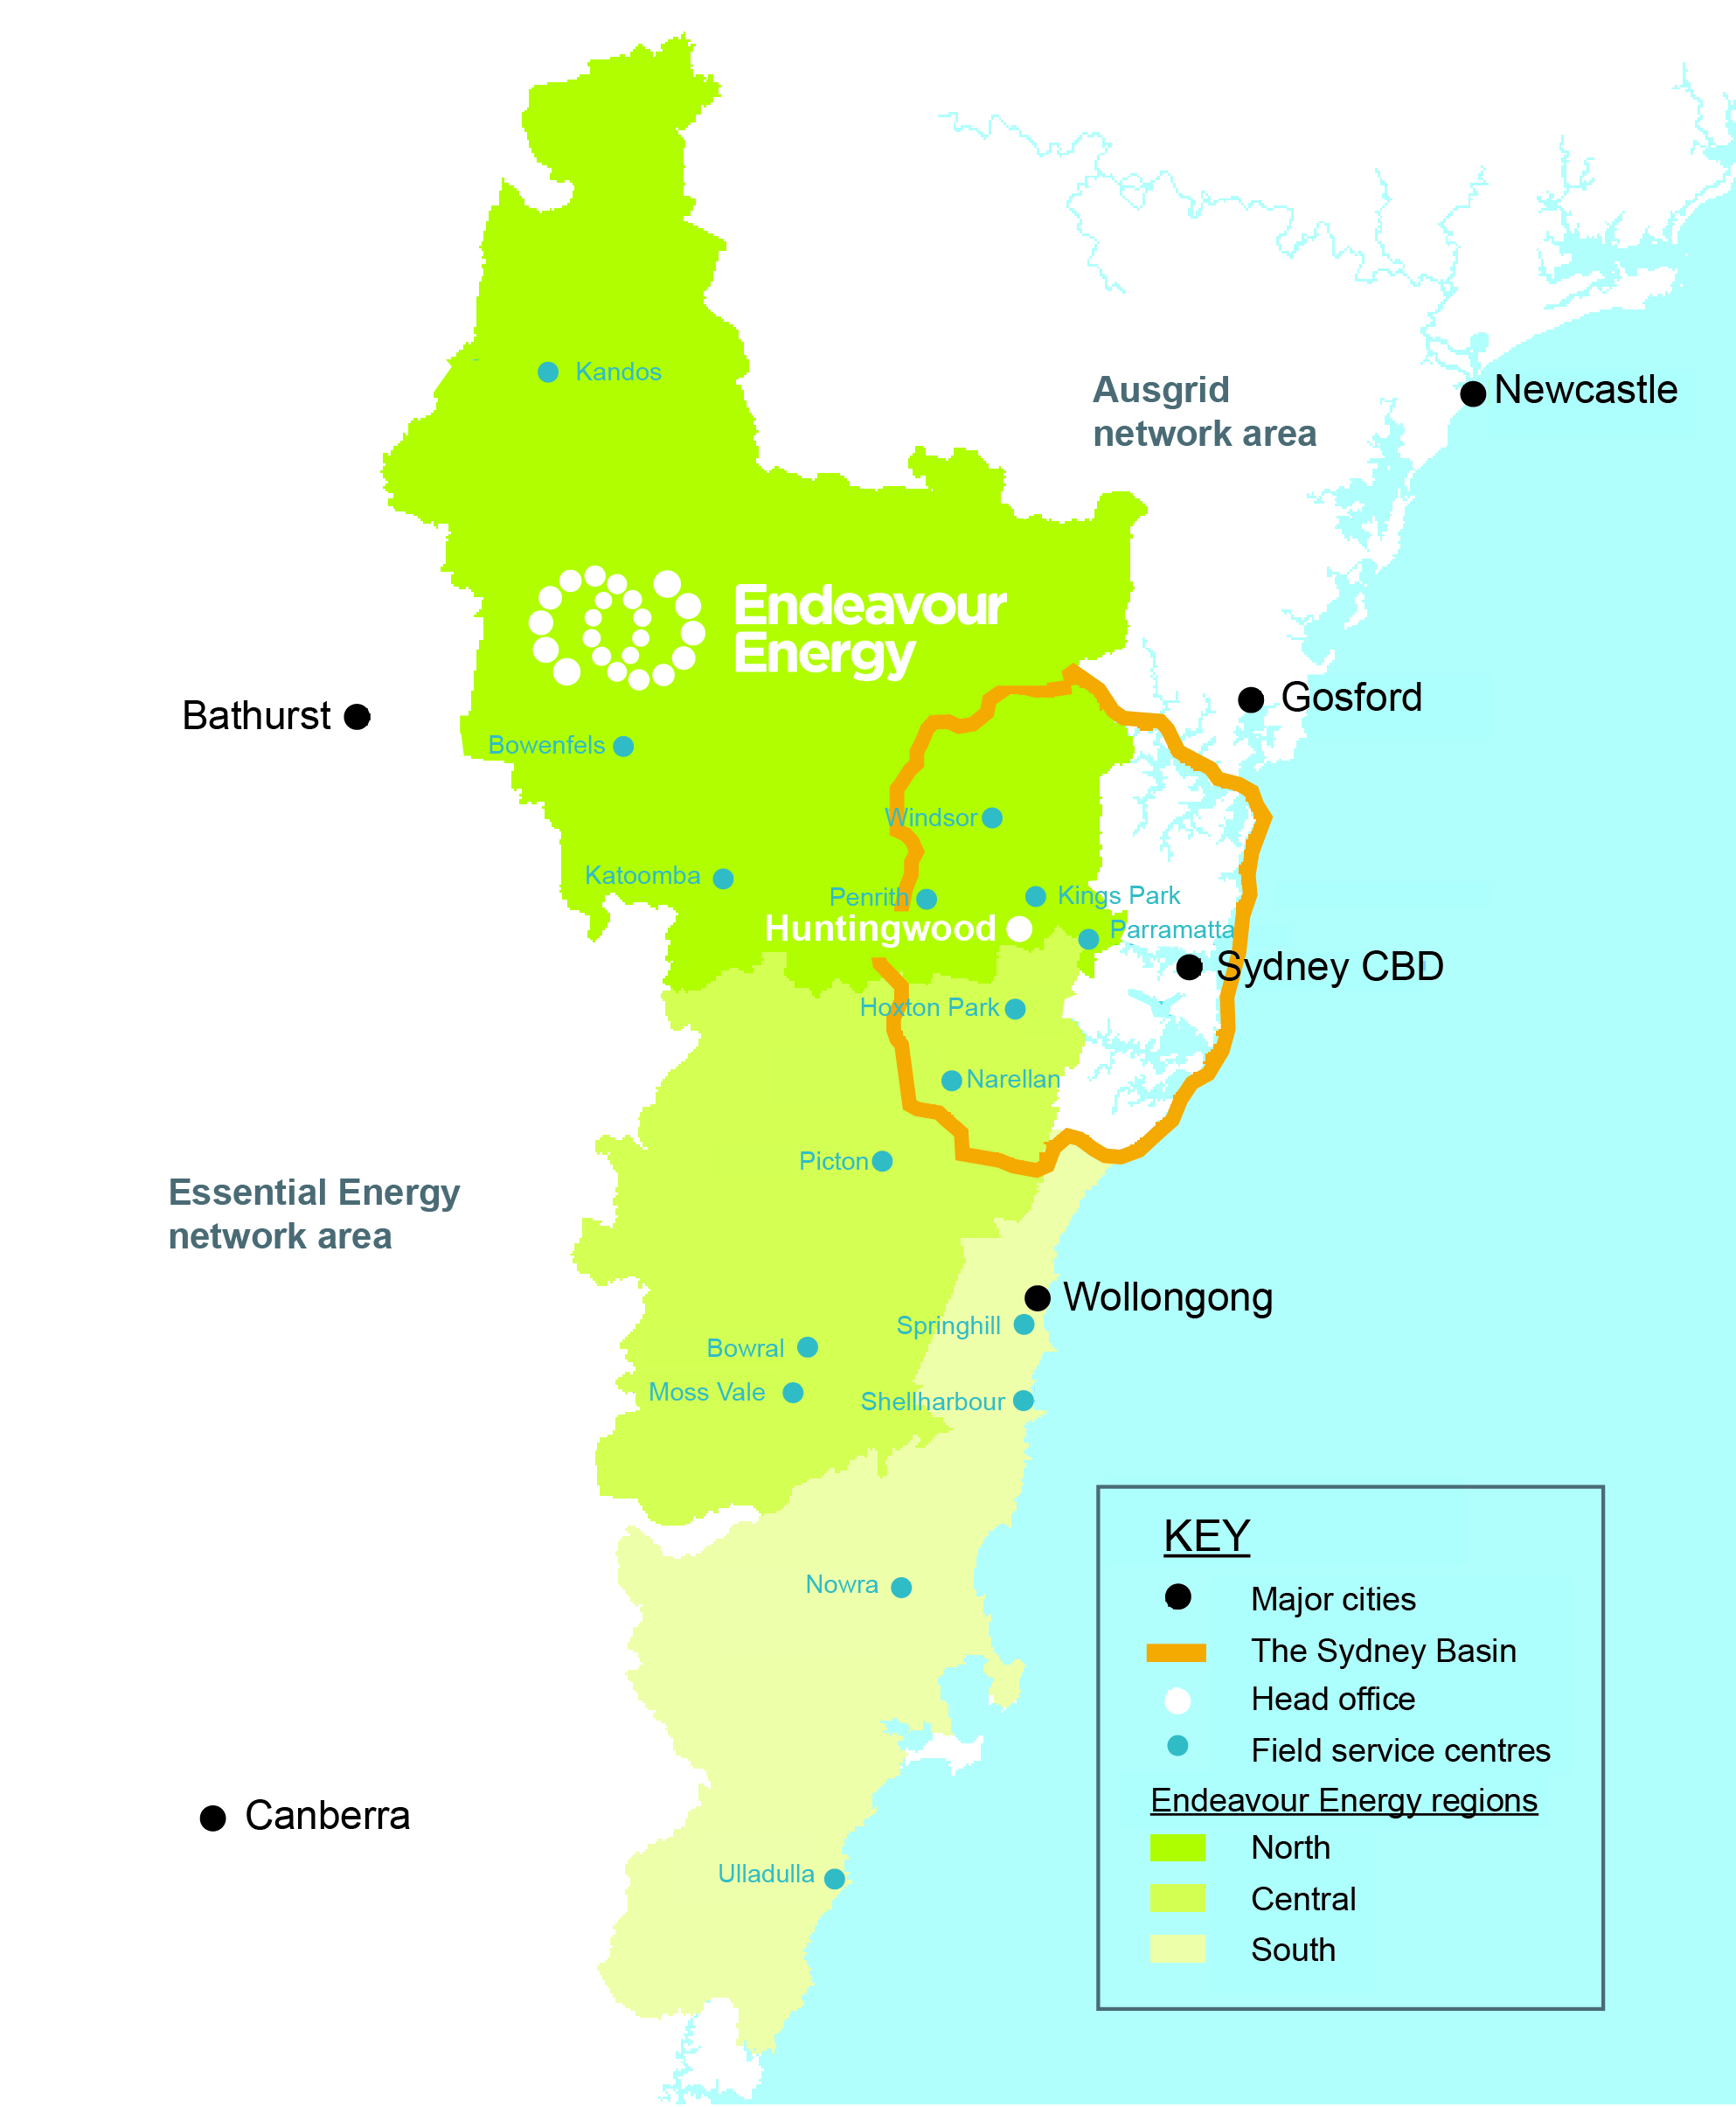 Endeavour Energy network map